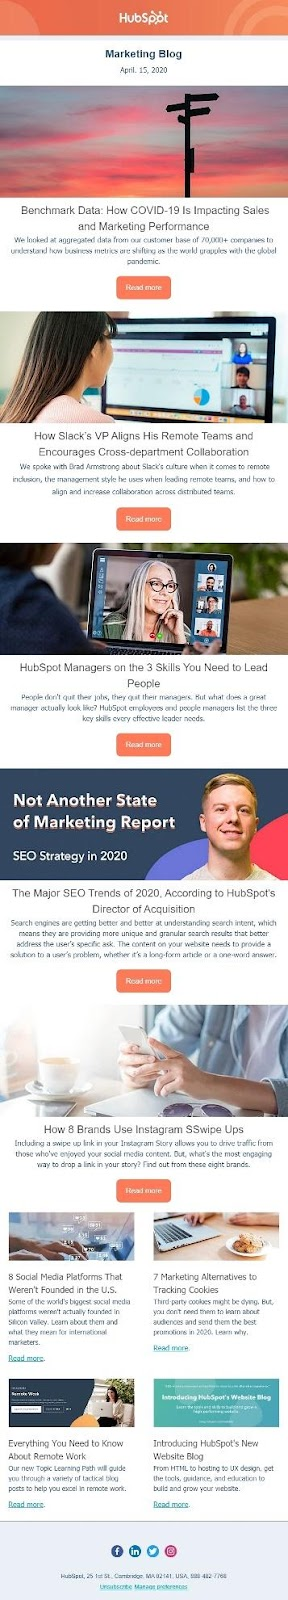 HubSpot newsletter example